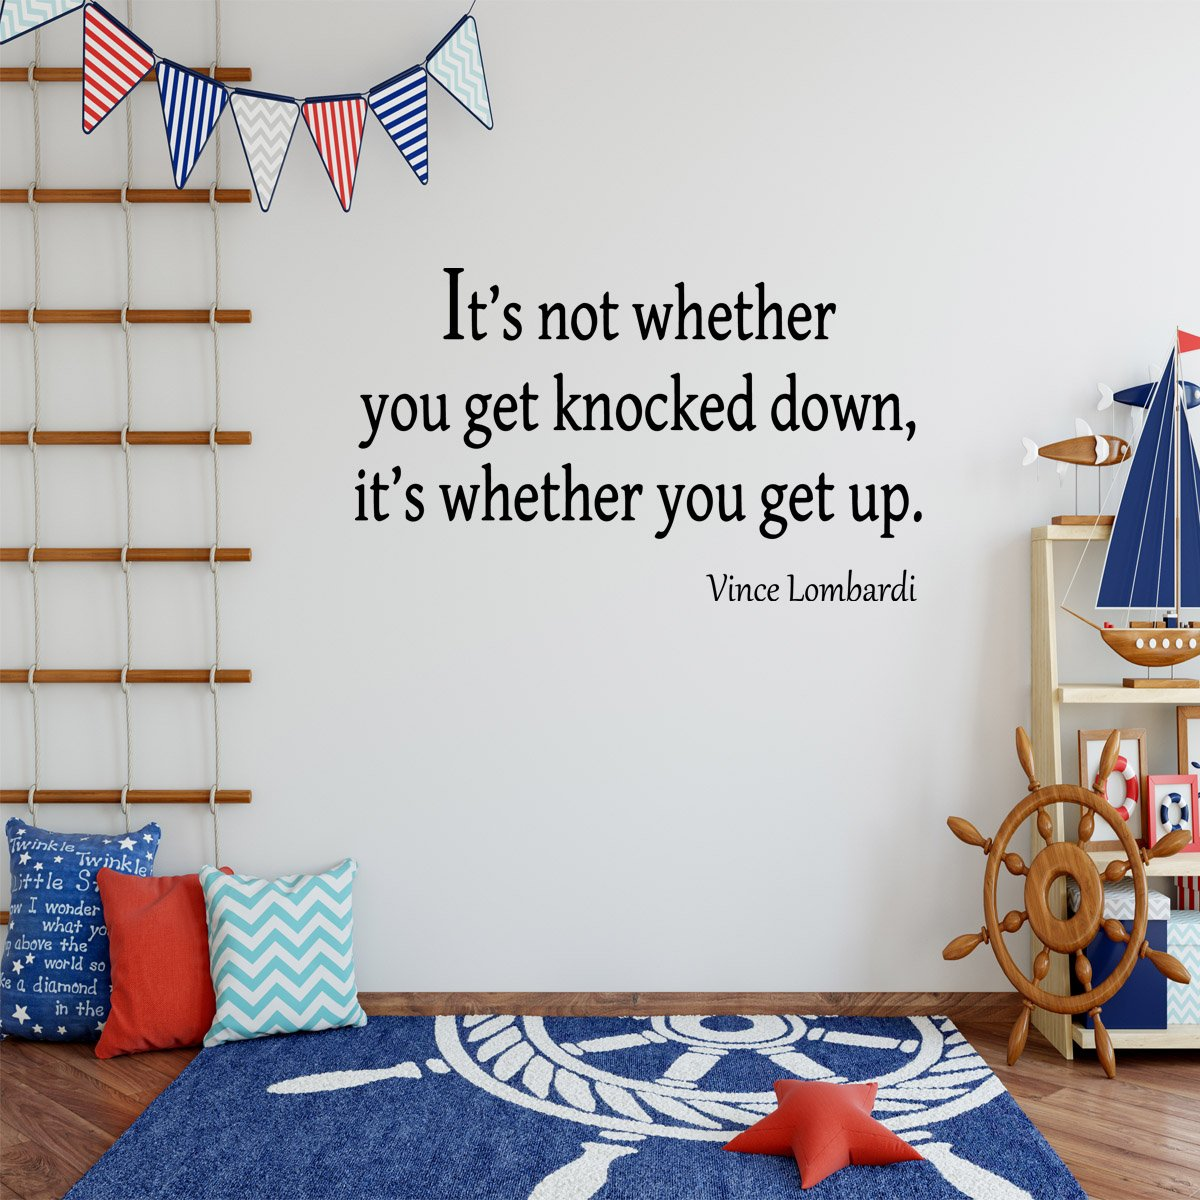 It's Not Whether You Get Knocked Down Vince Lombardi Wall Decal - VWAQ Vinyl Wall Art Quotes and Prints